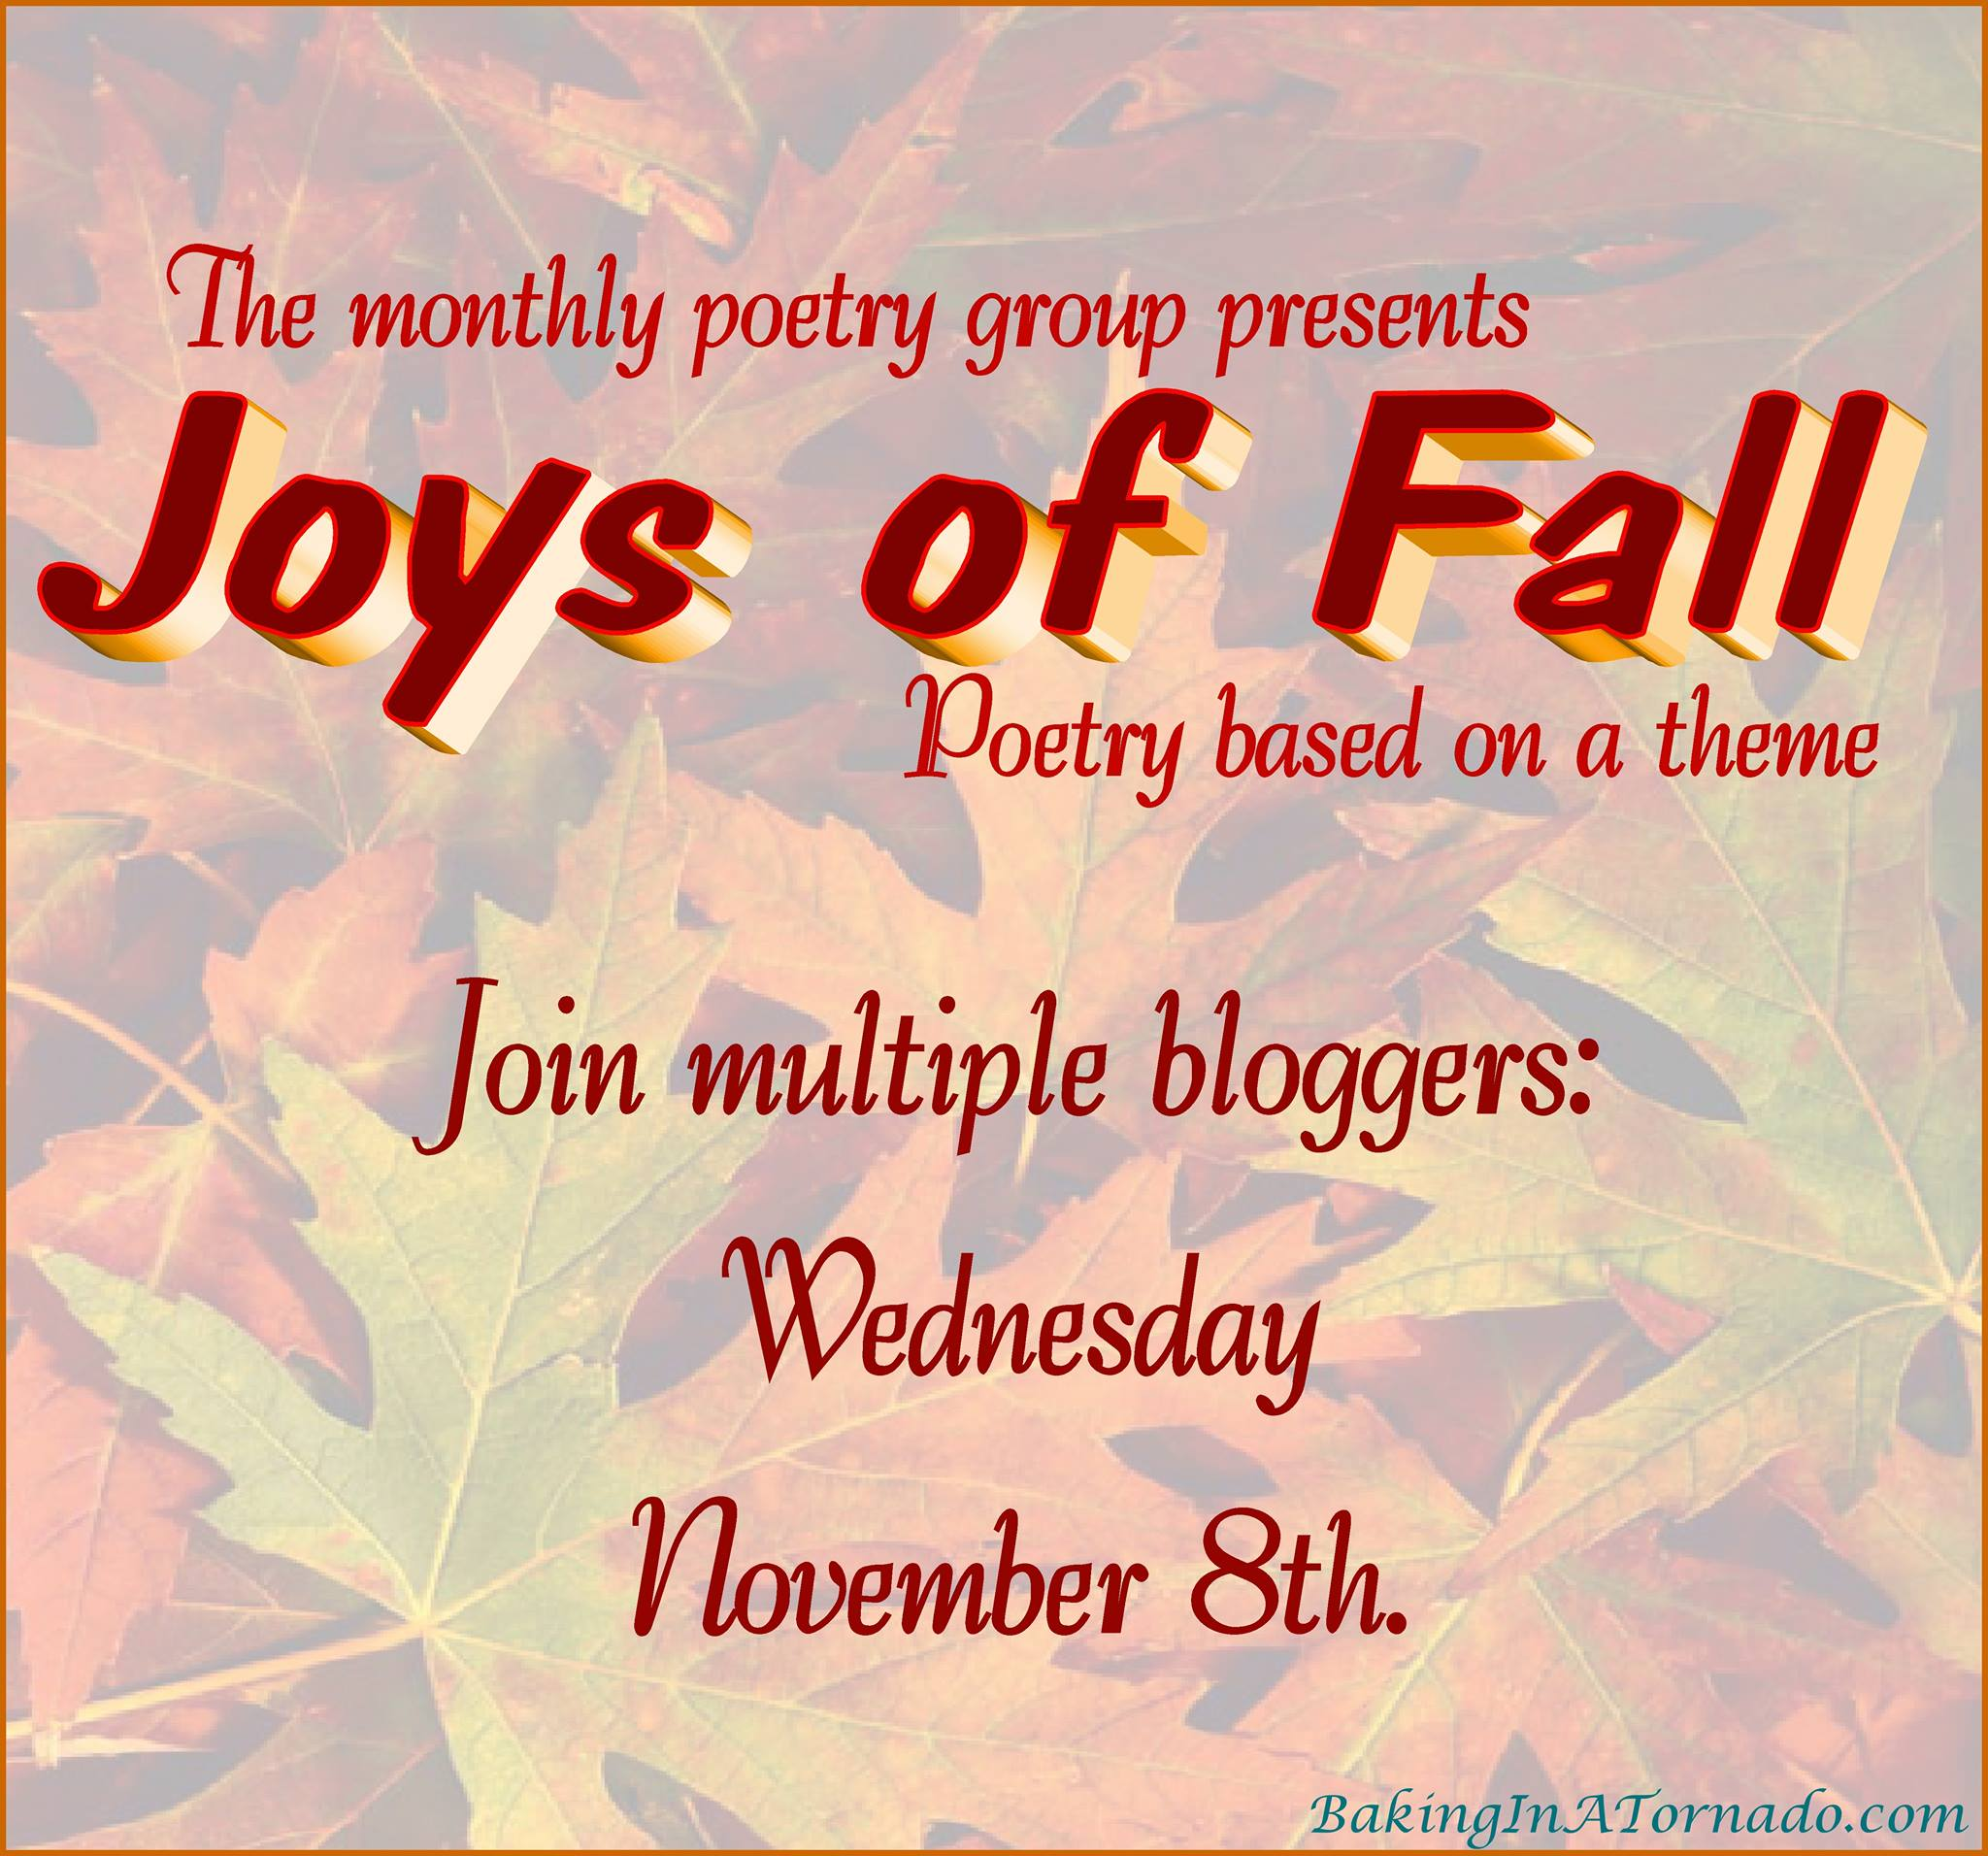 joys of fall poetry linkup image